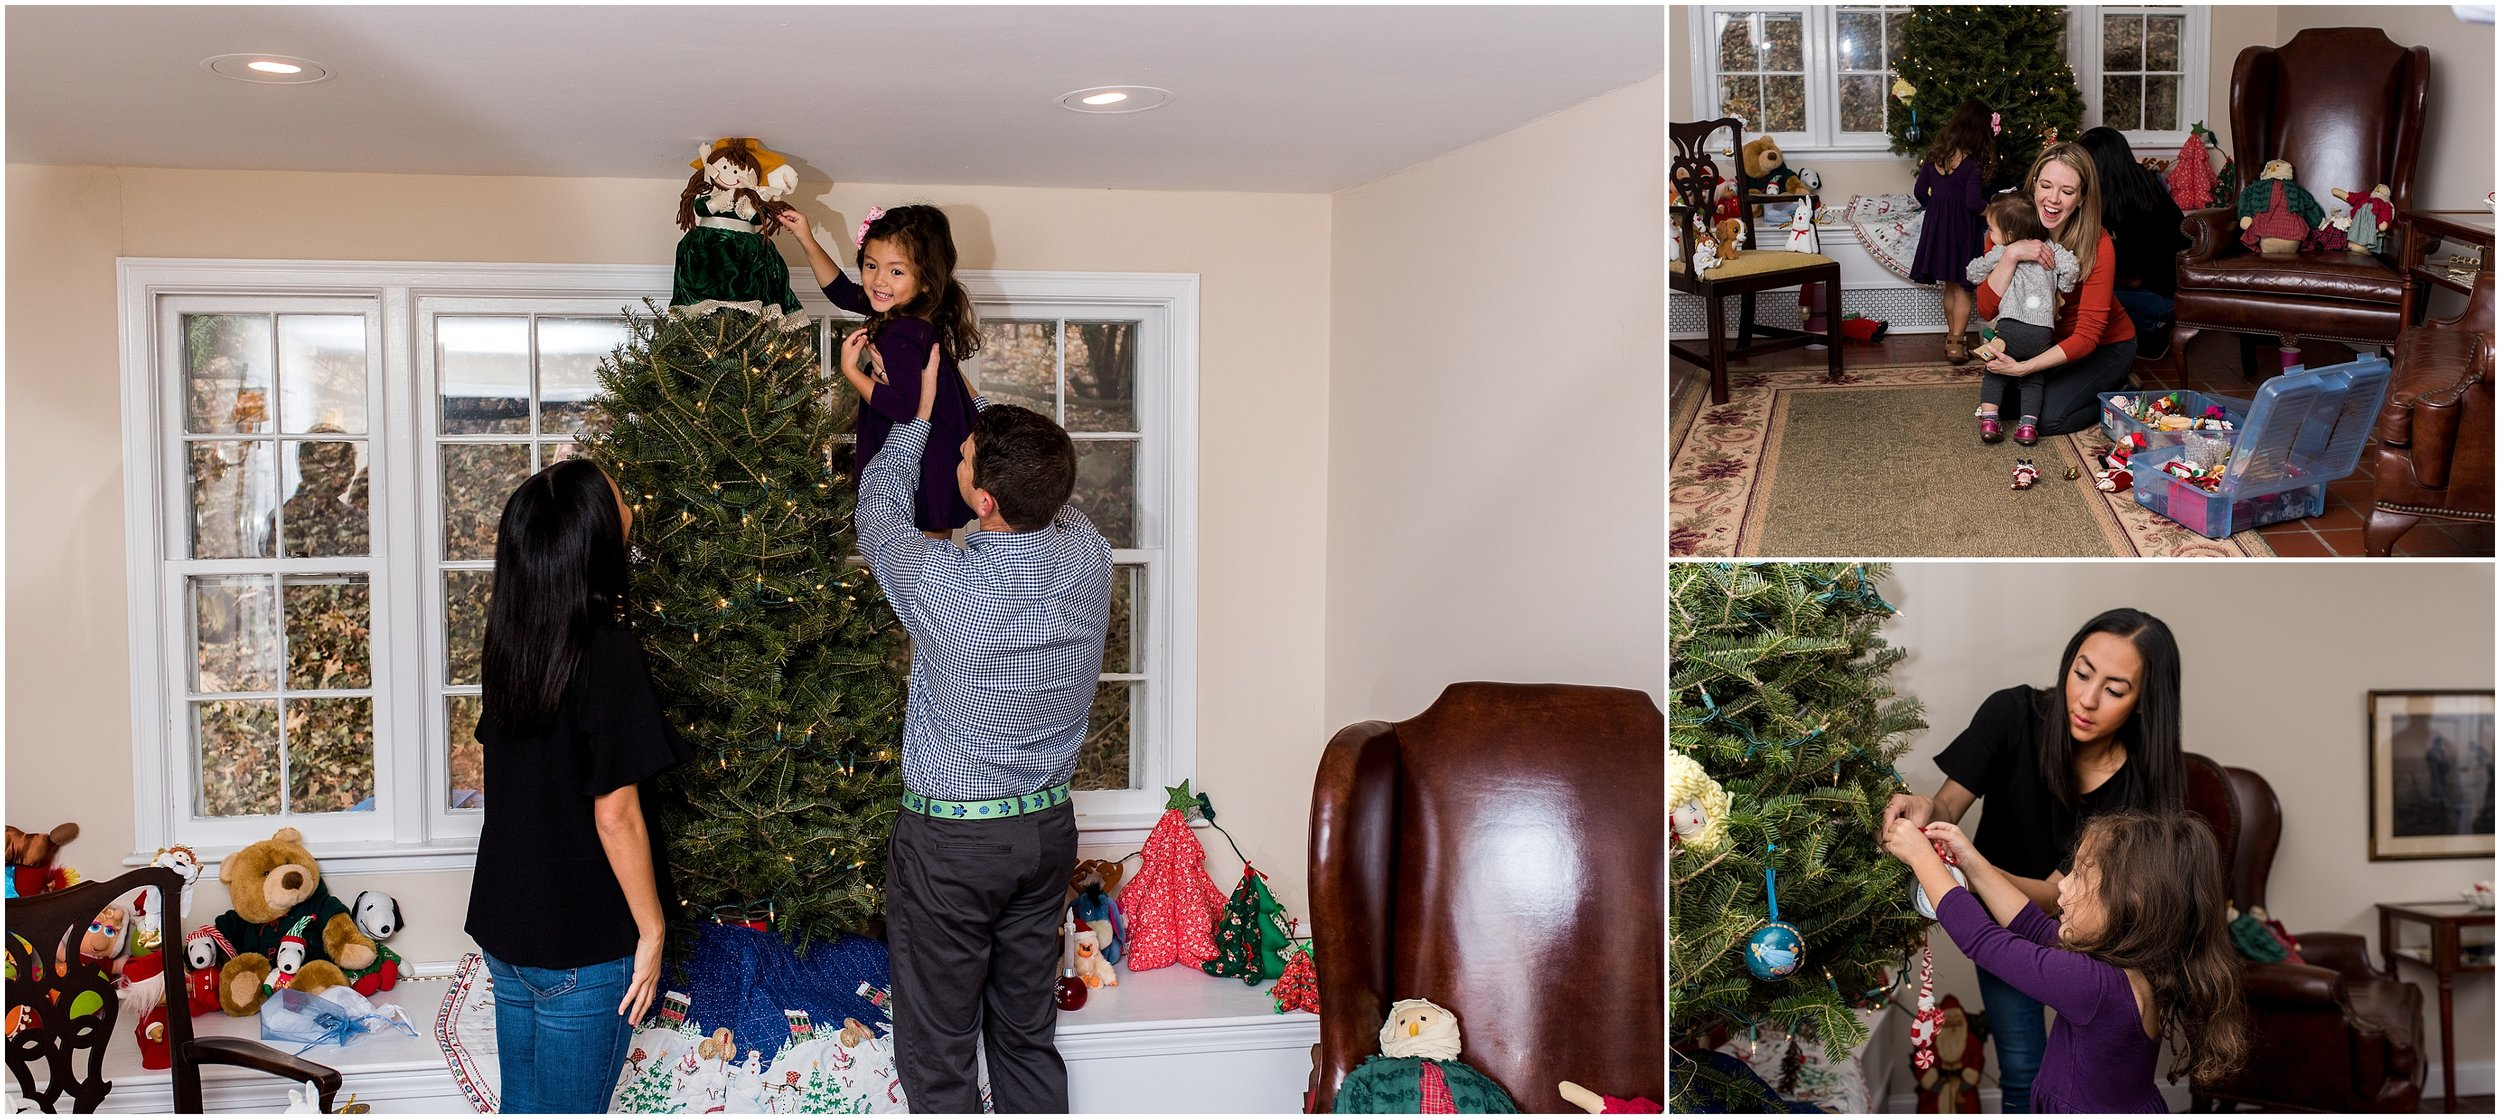 family decorating christmas tree, ct large family photography